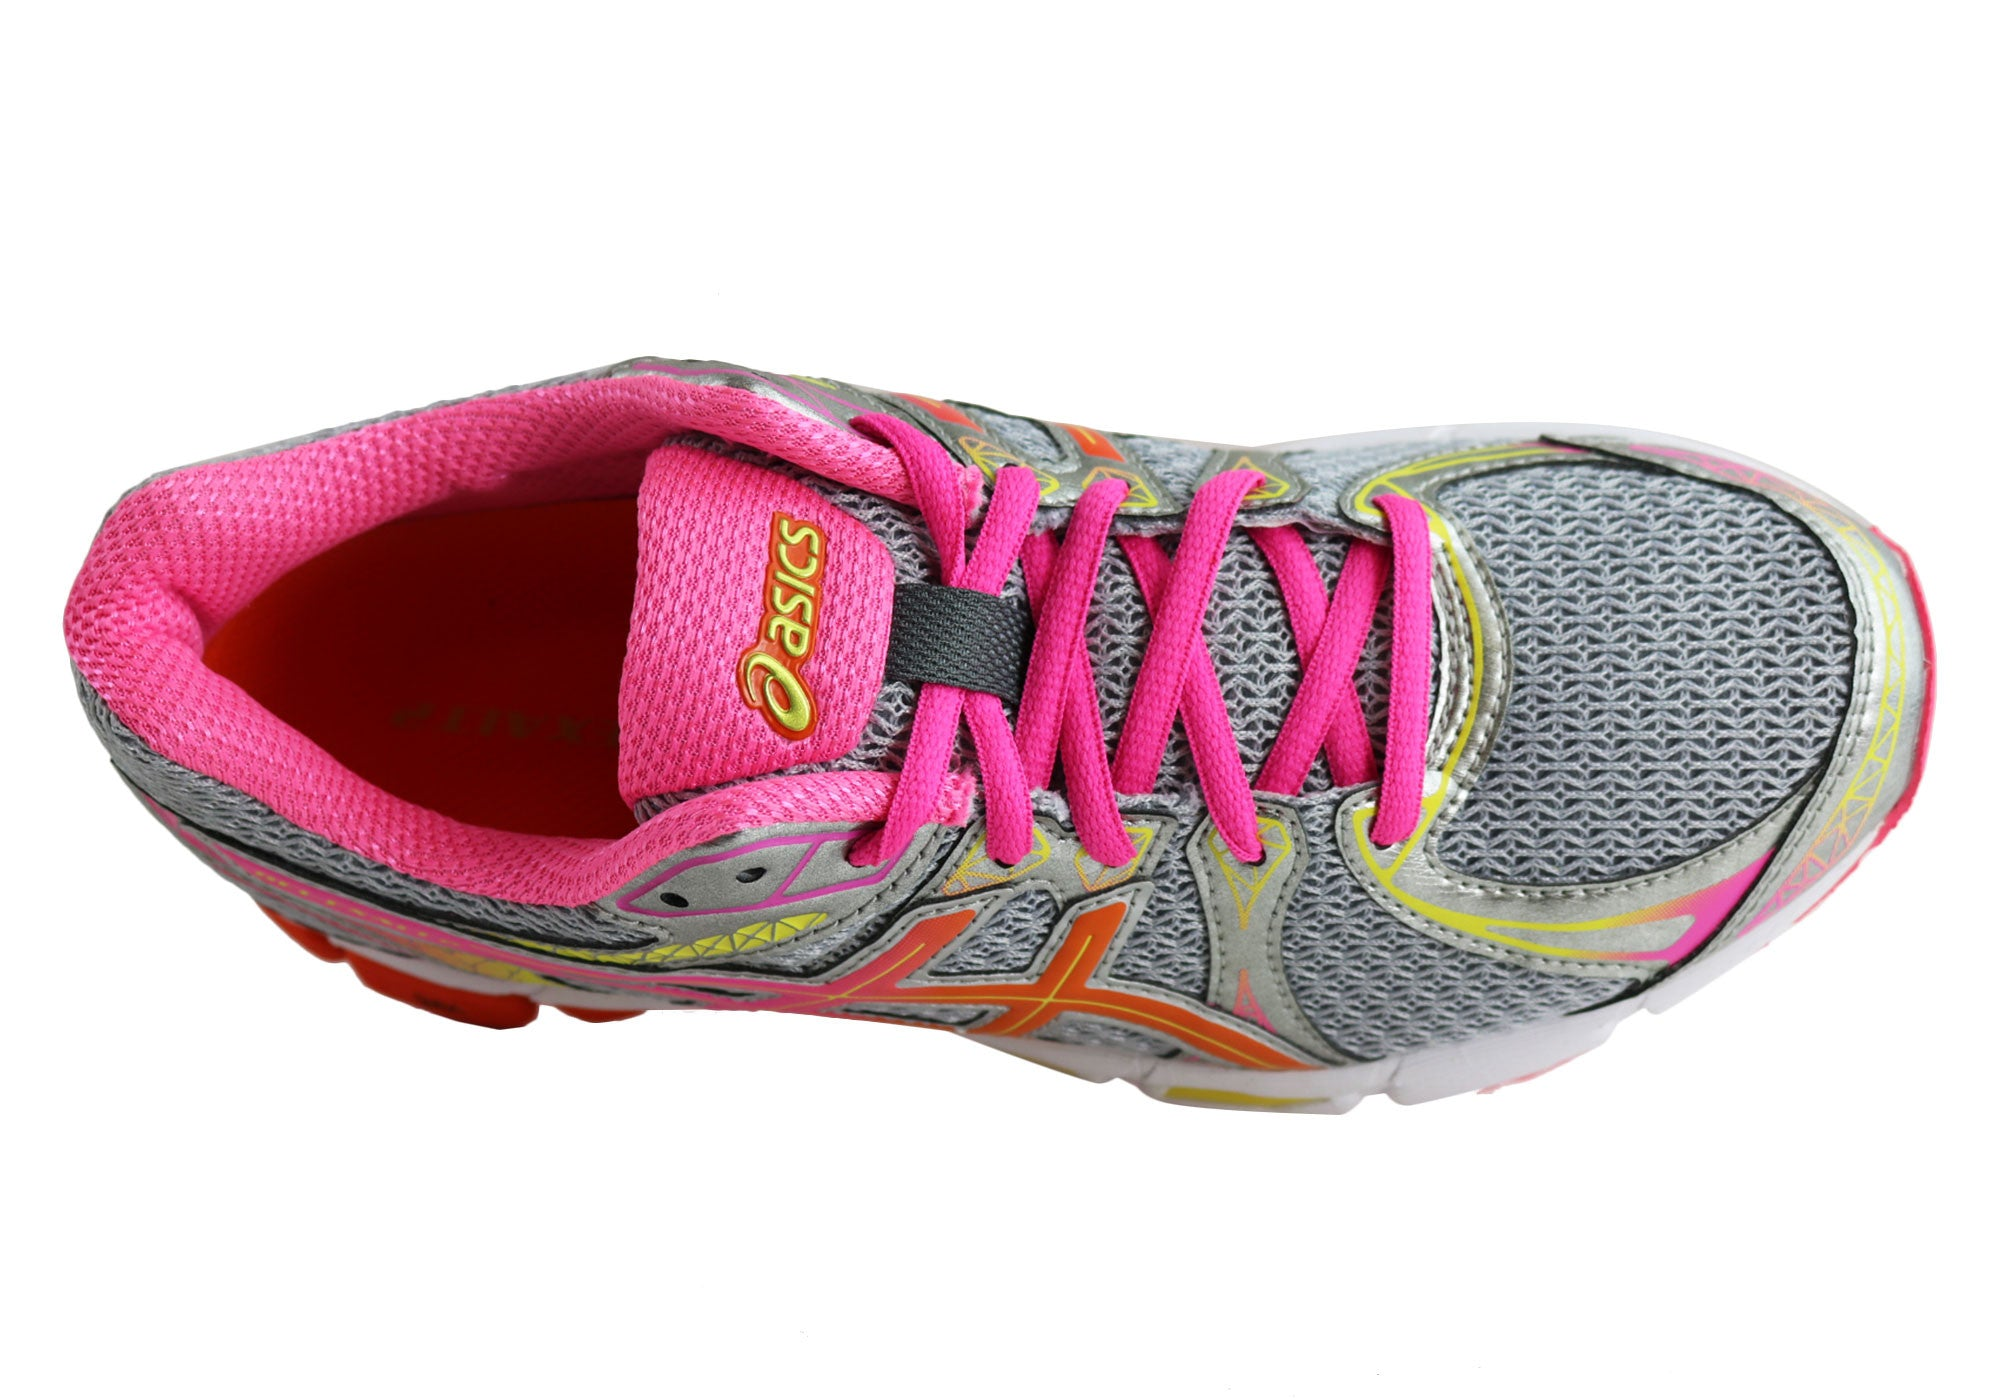 Details about Brand New Asics Gel Exalt 2 Womens Cushioned RunningSport Shoes